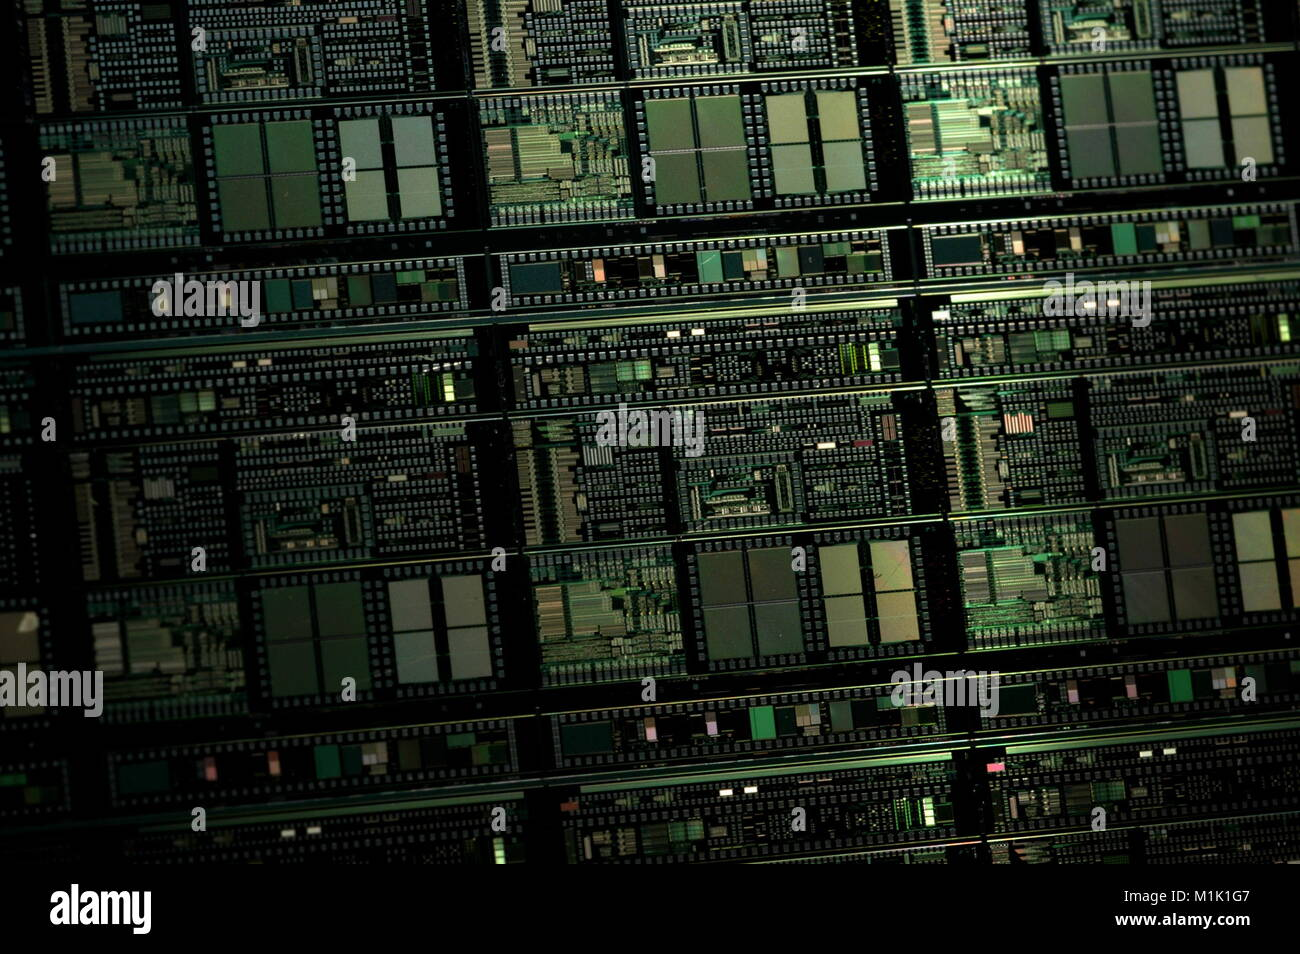 Microprocessor Chip Silicon Stock Photos Electronic Integrated Circuit Royalty Free Image A Close Up Shot Showing Multiple Chips On Manufacturing Wafer Before They Are